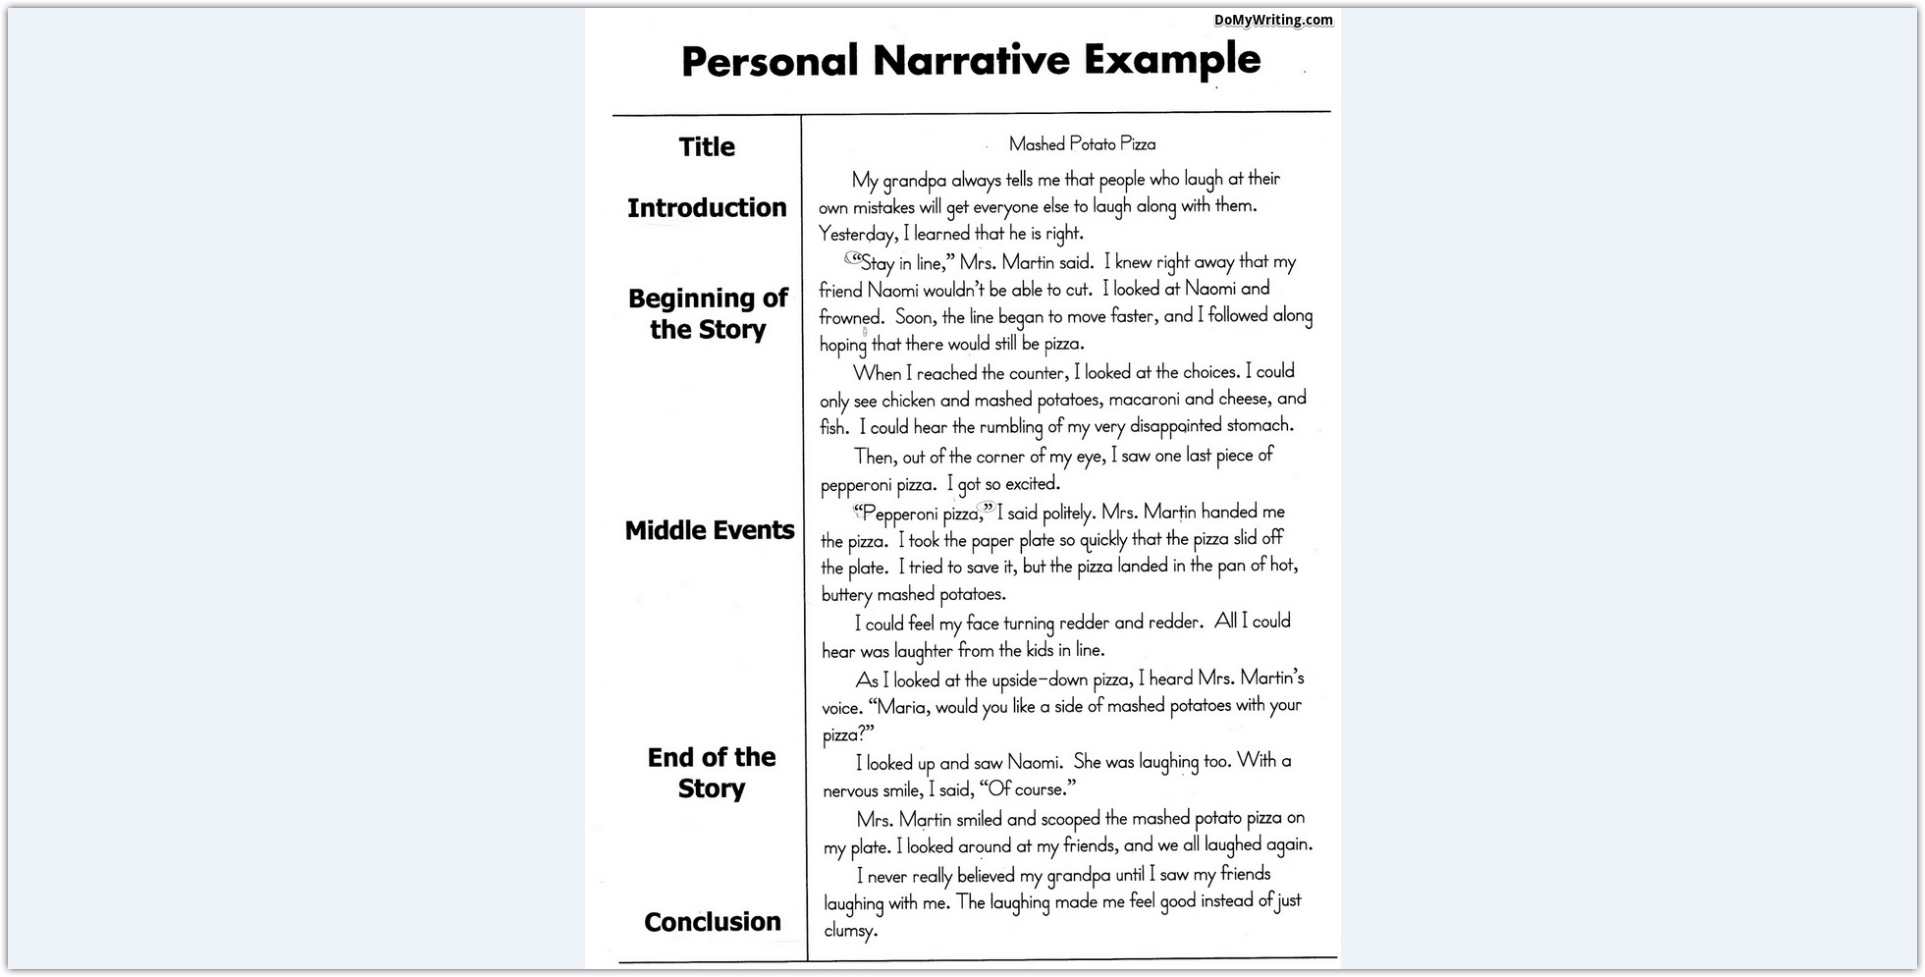 002 Narrative Essay Example What Is Breathtaking A Writing In Third Person 5th Grade And Their Examples